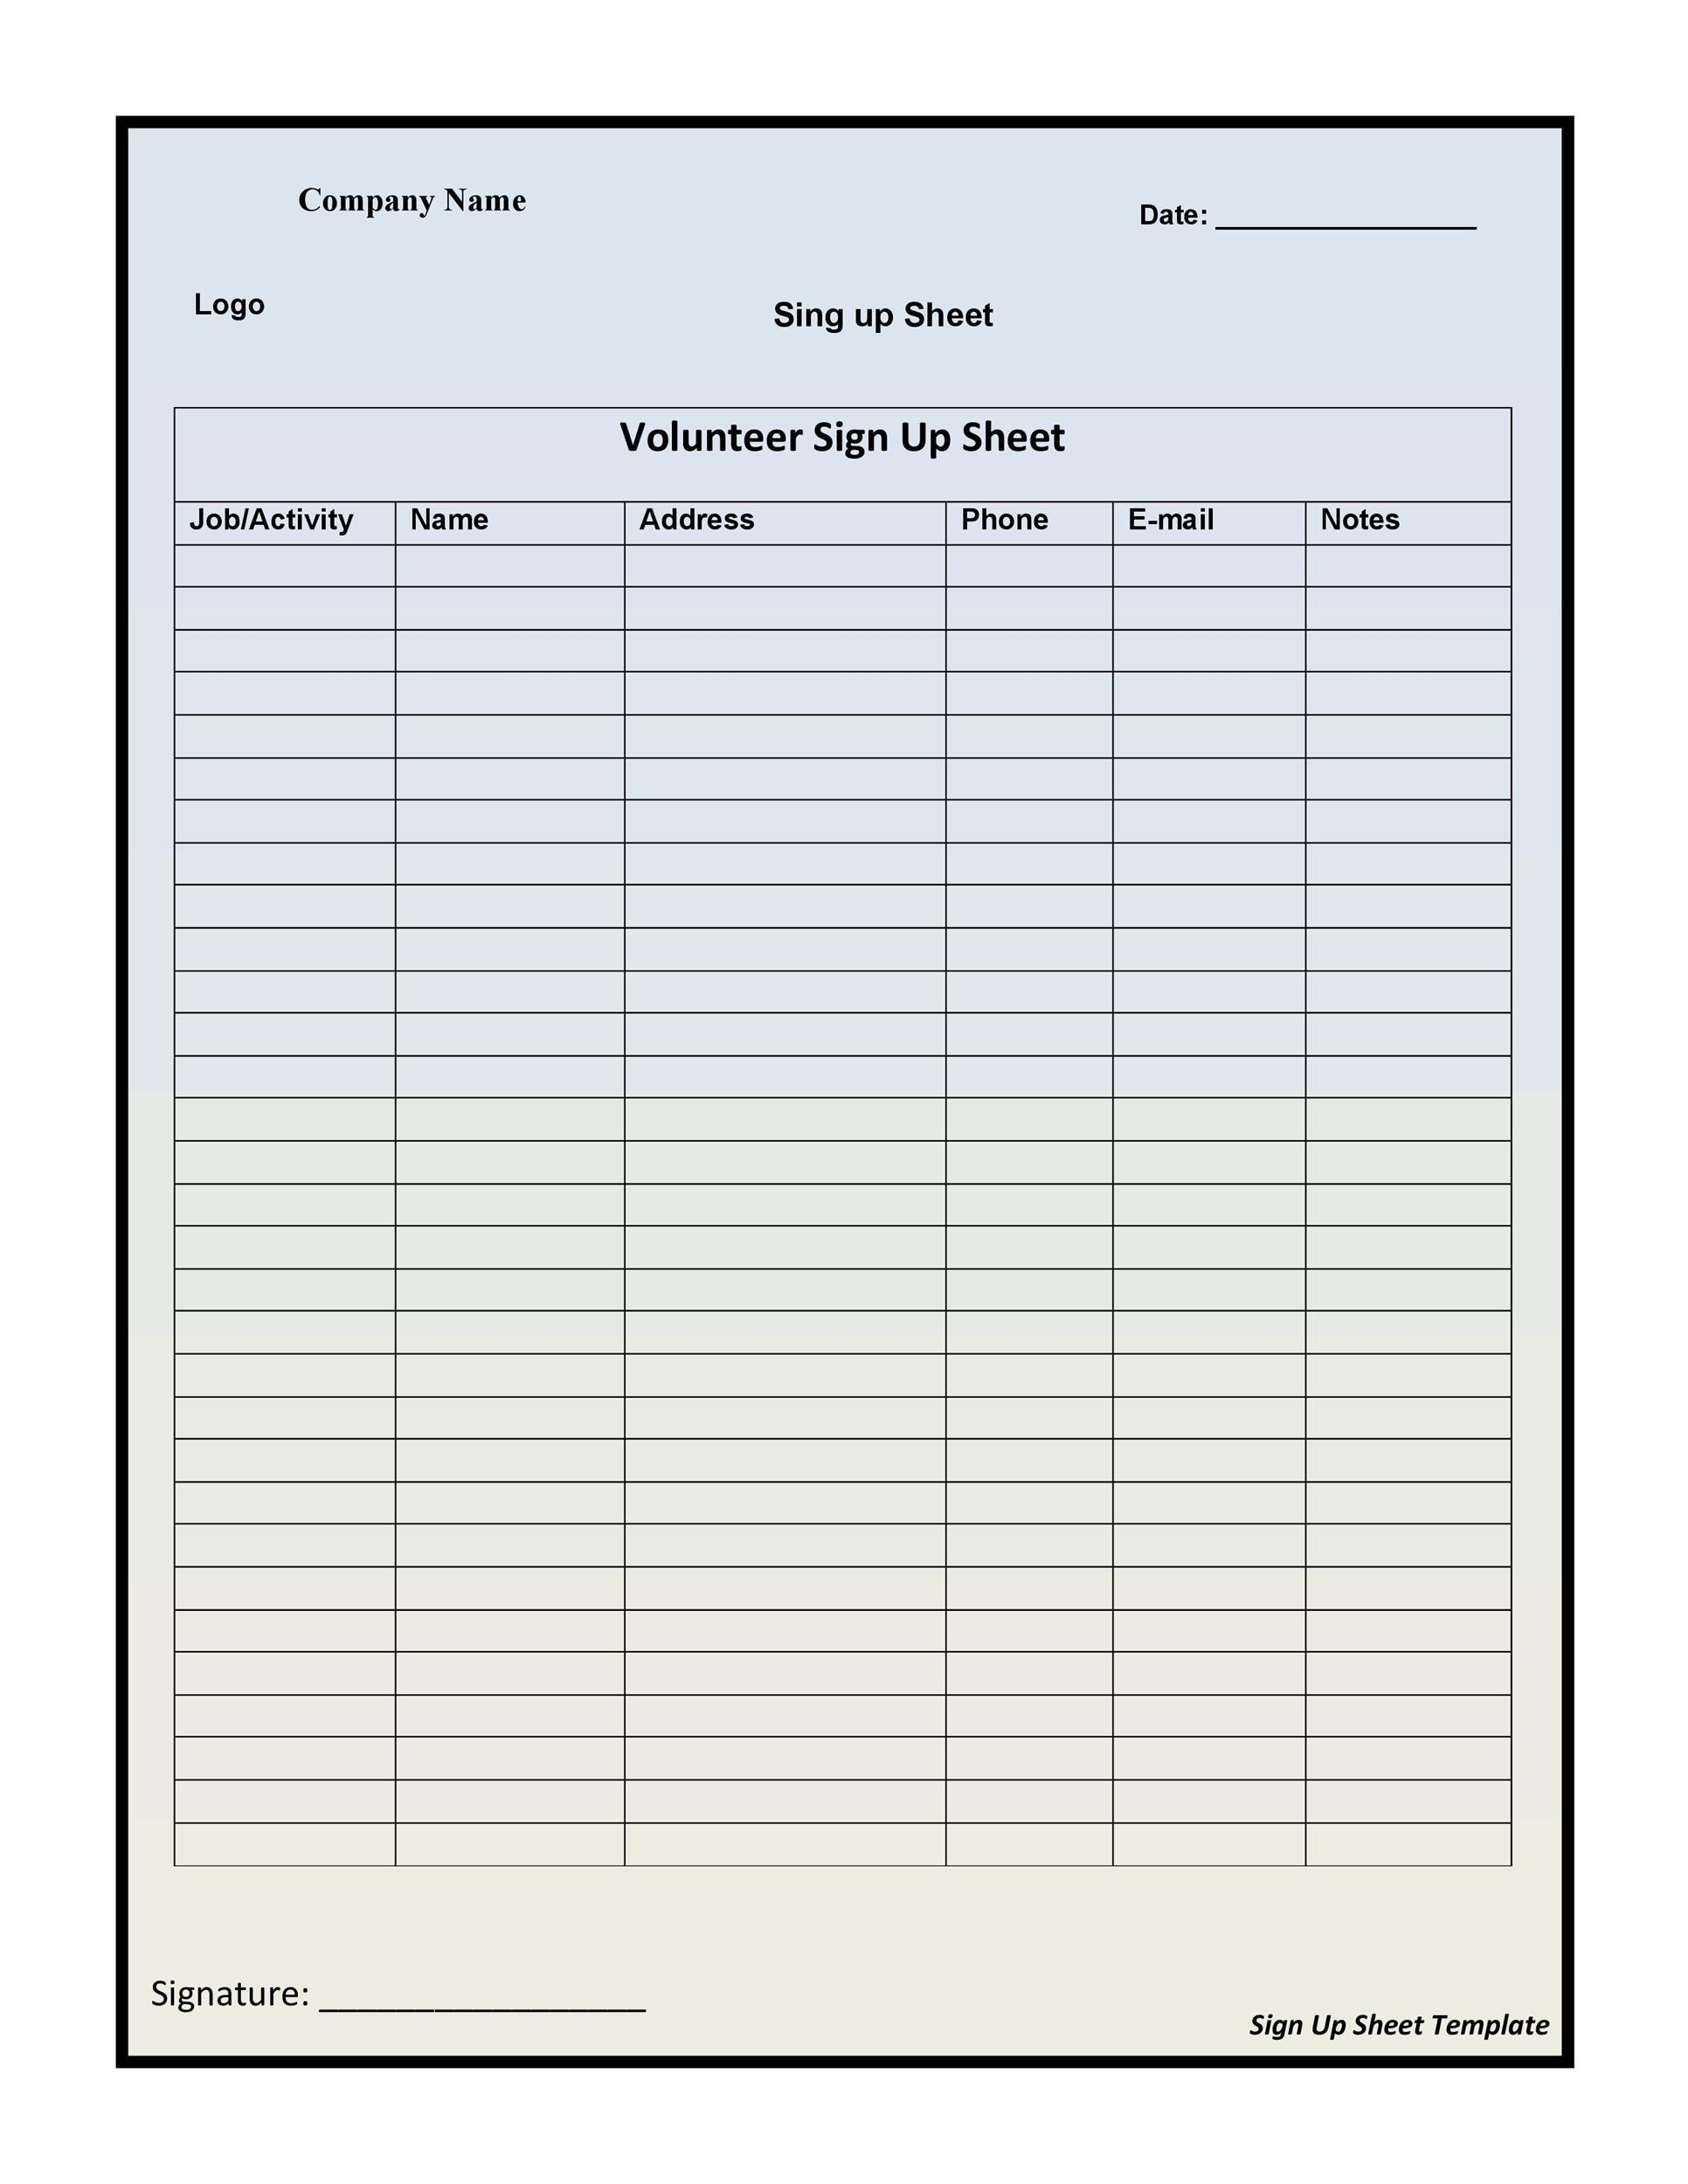 t shirt sign up sheet template - Acur.lunamedia.co